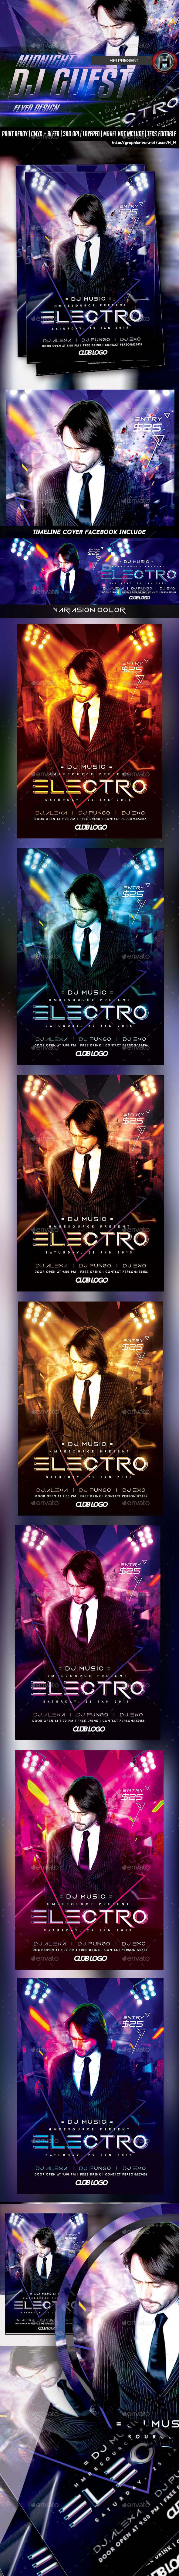 GraphicRiver DJ ELECTRO GUEST FLYER 10007895